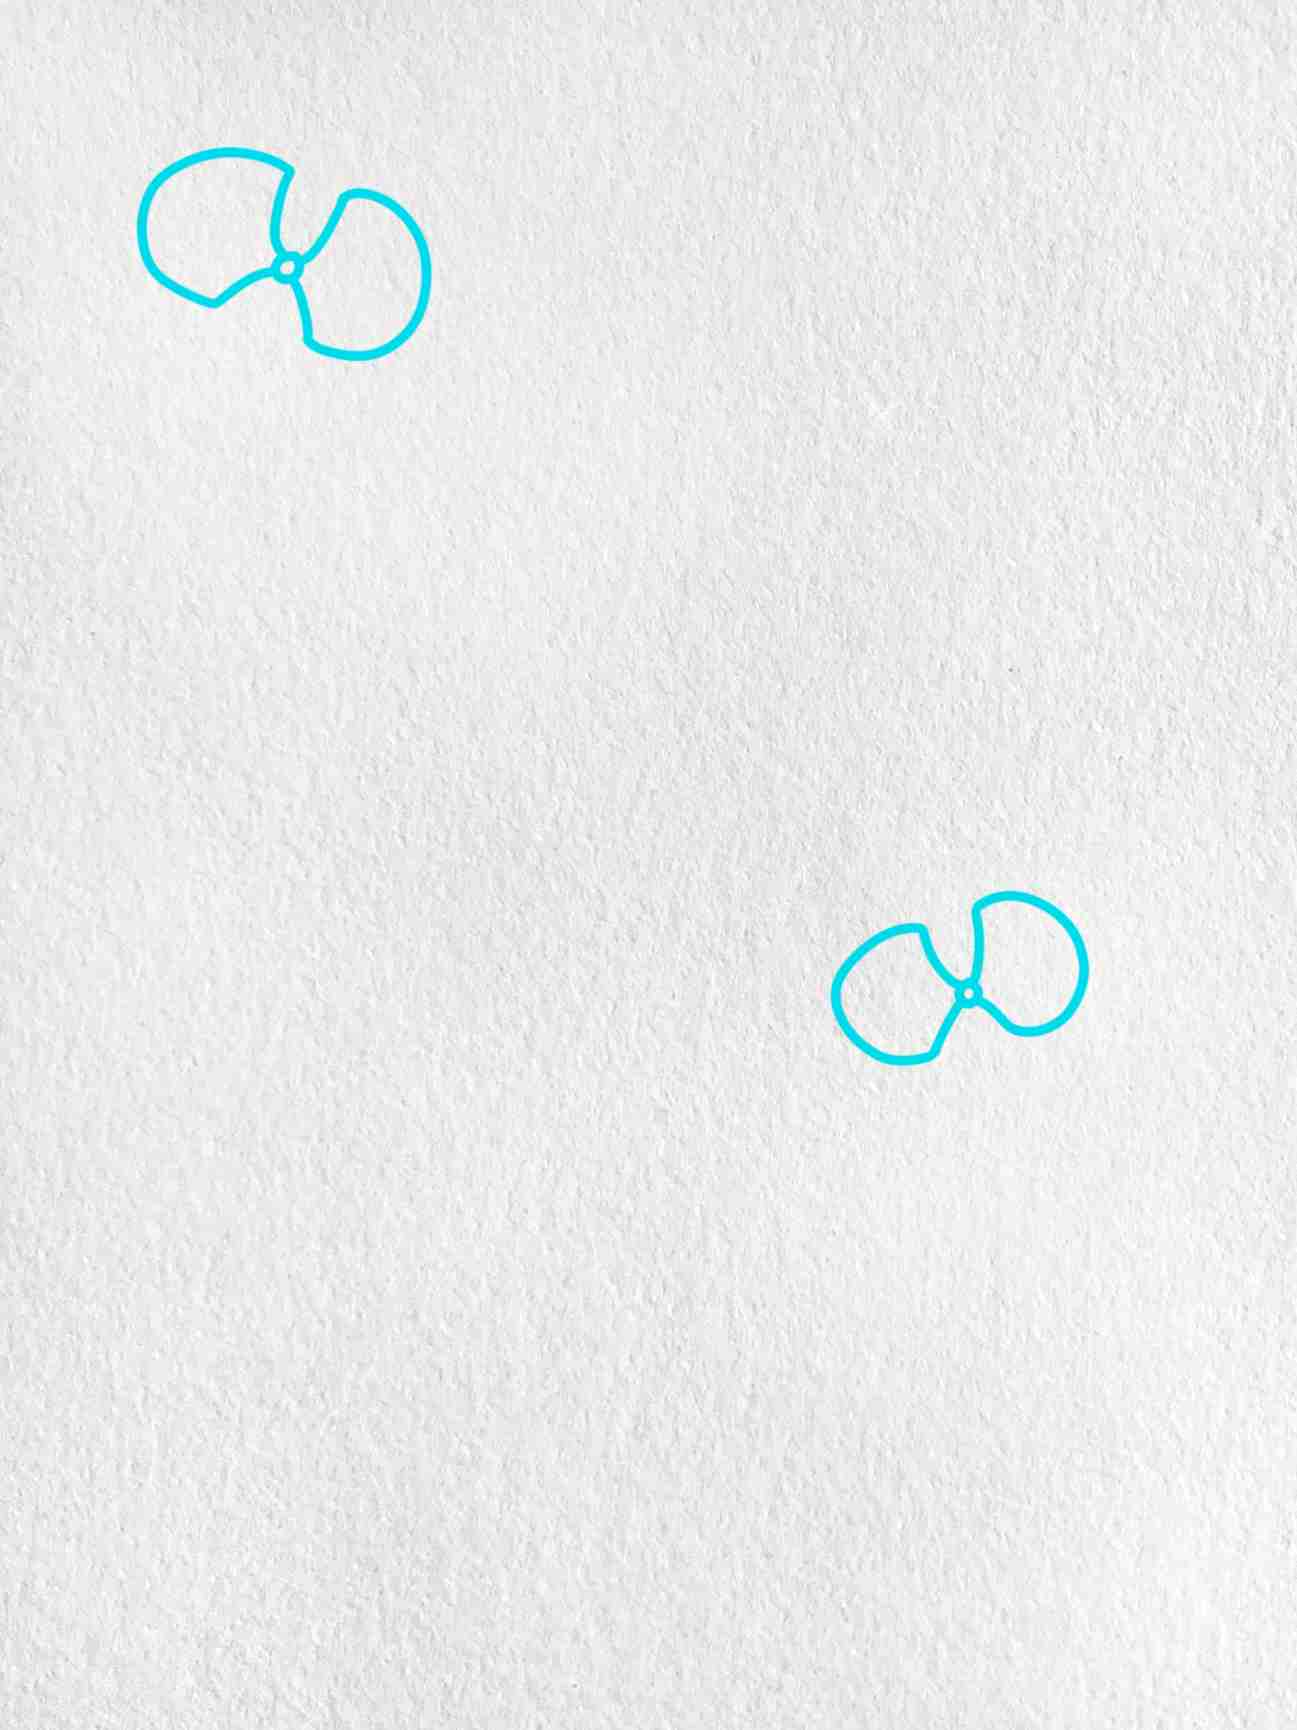 How To Draw Orchid: Step 1